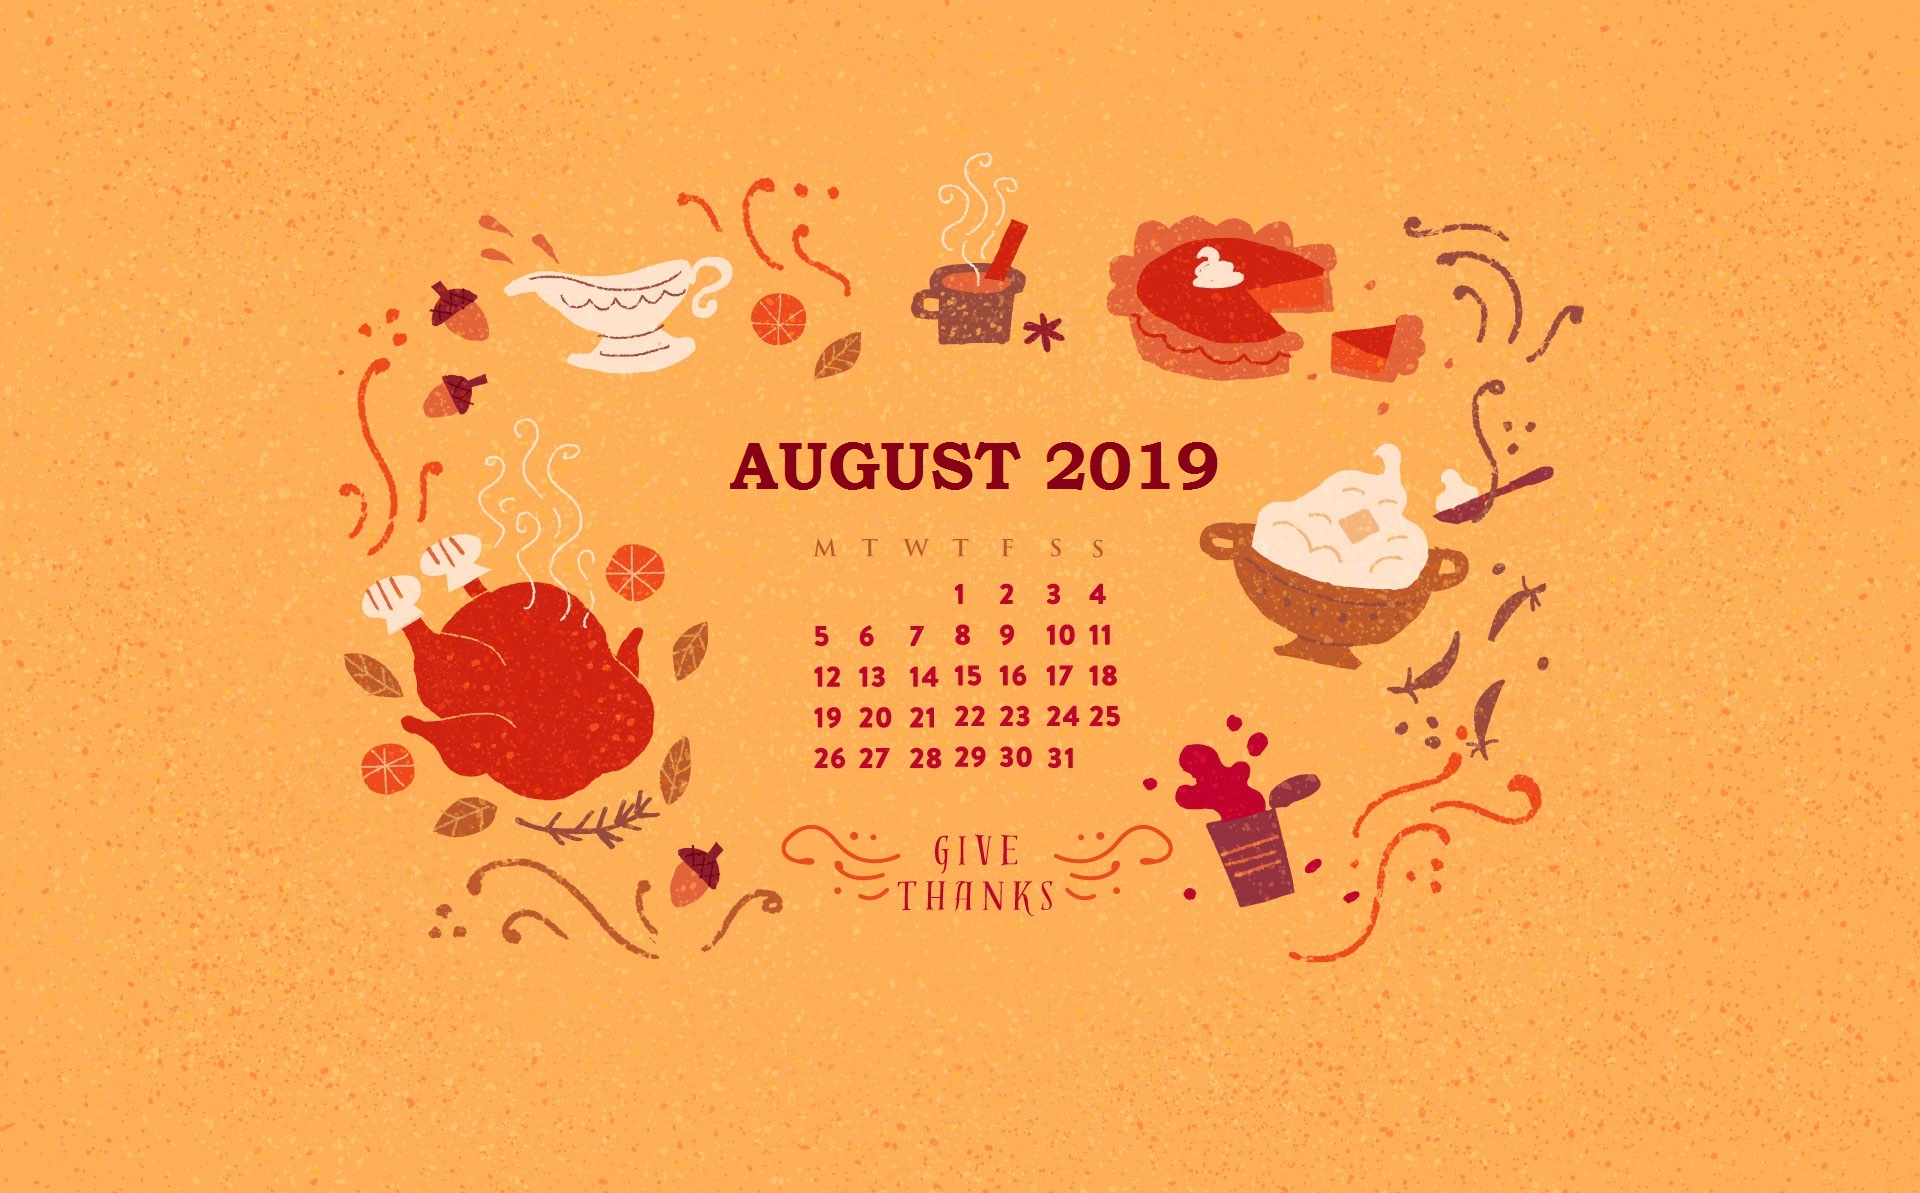 August 2019 Calendar Screensaver